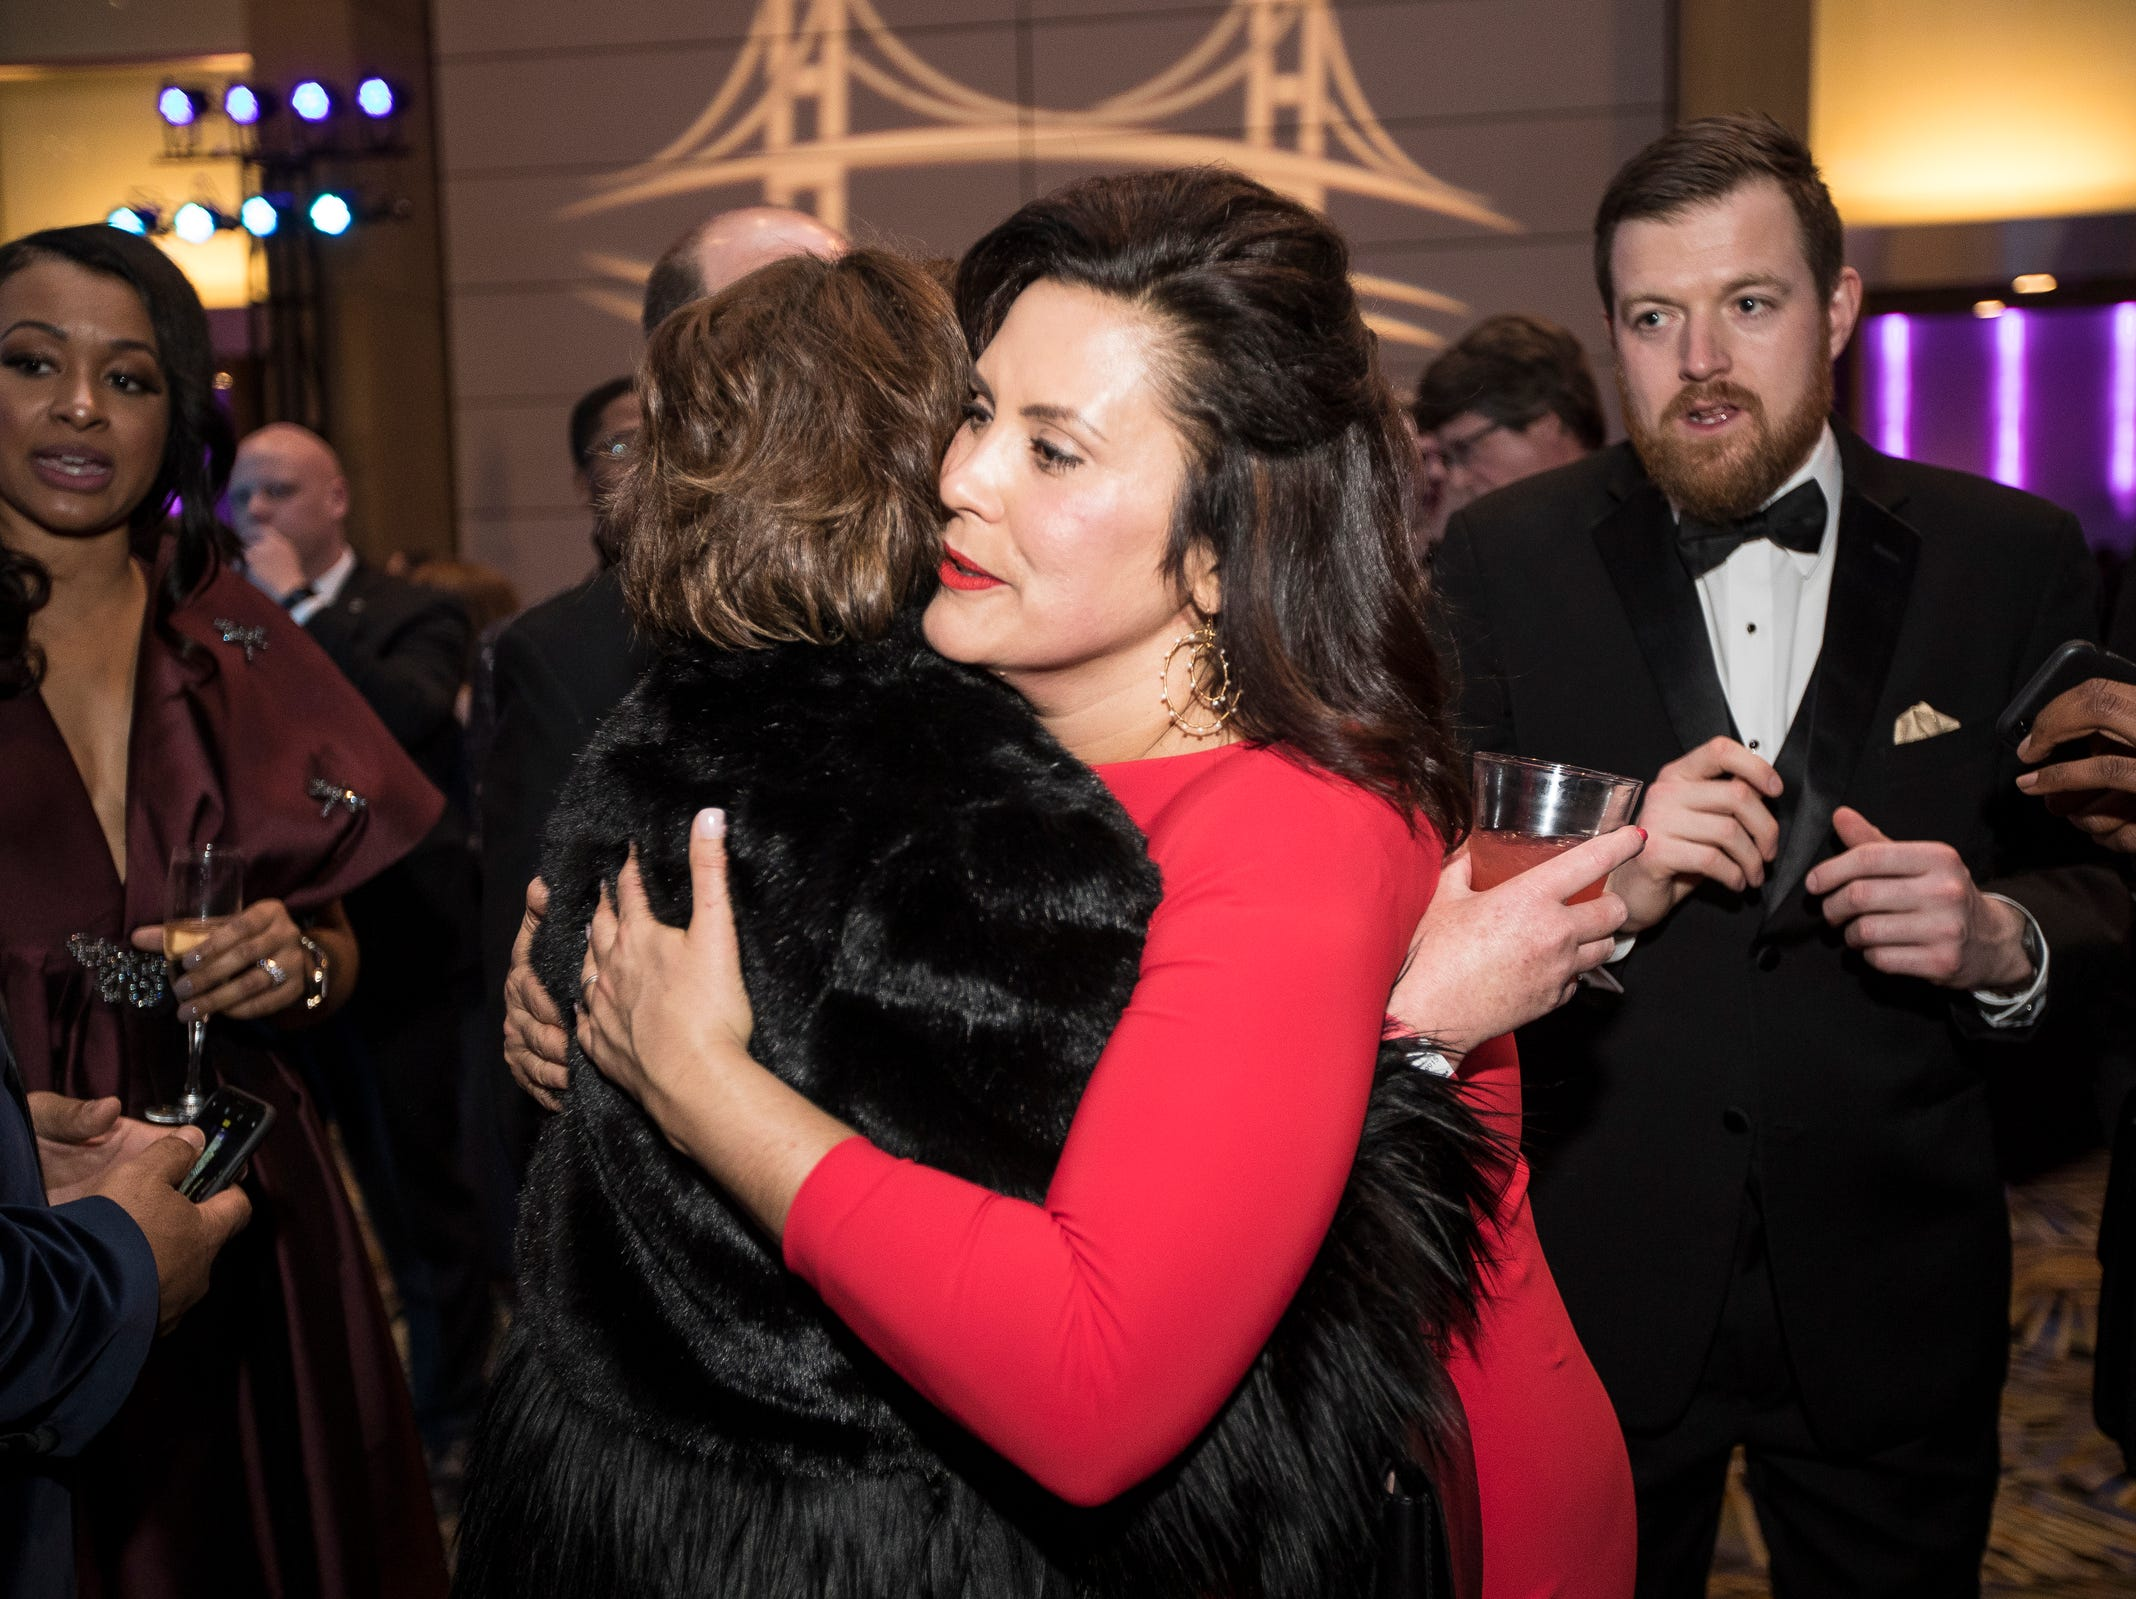 Governor Gretchen Whitmer hugs Fems for Dems steering committee member Julie Campbell-Bode during the inaugural ball at Cobo Center in Detroit on Tuesday, Jan. 1, 2019.